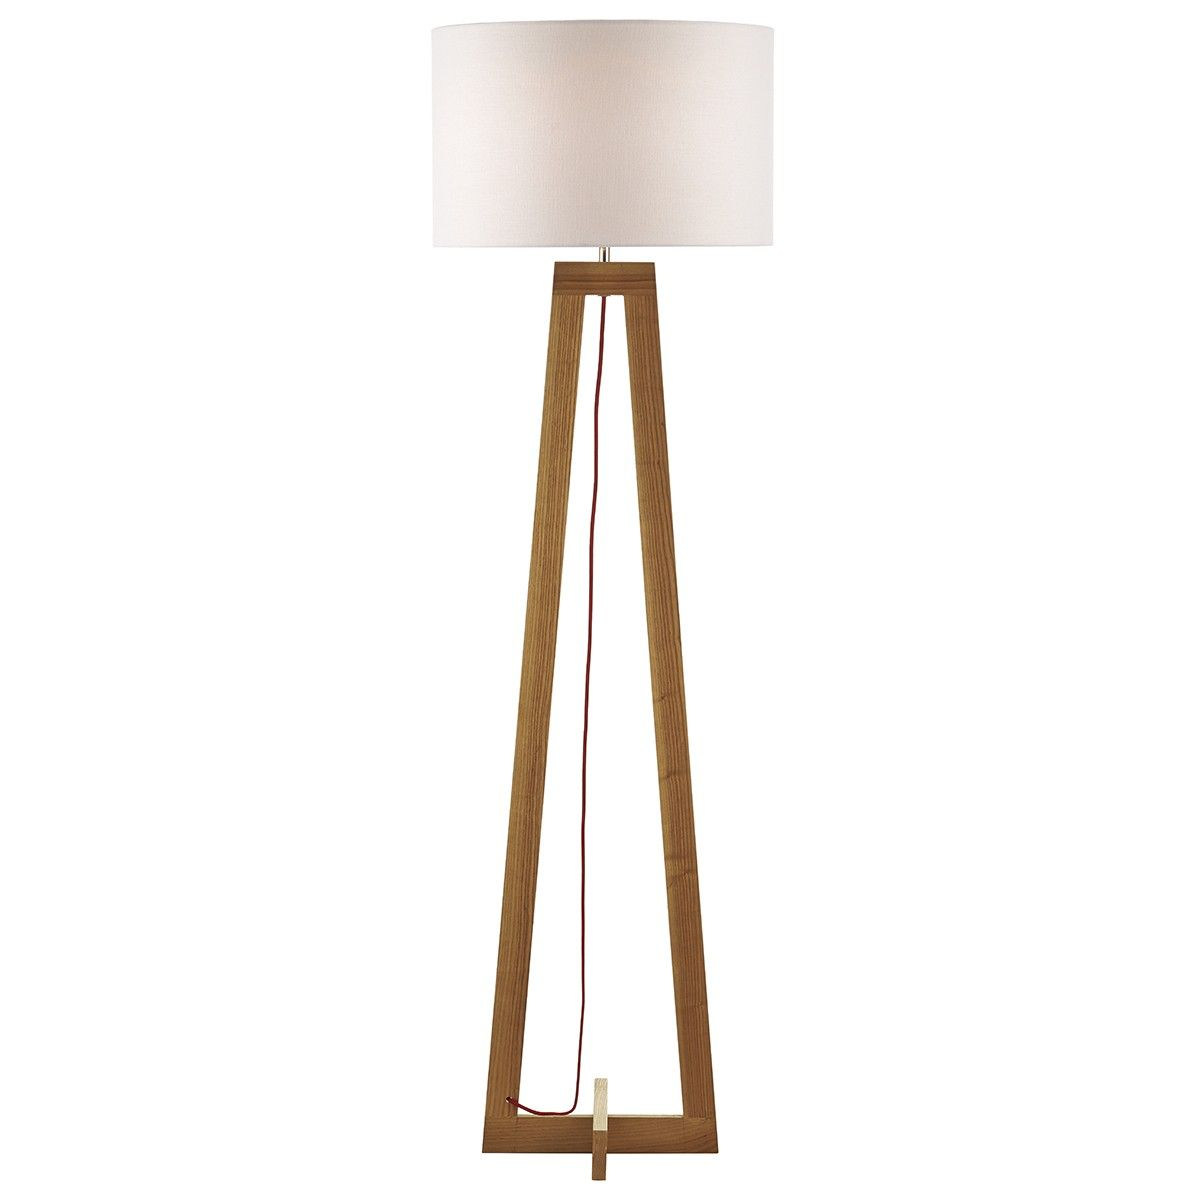 125 Wisconsin Floor Lamp Wood Base Only No Shade